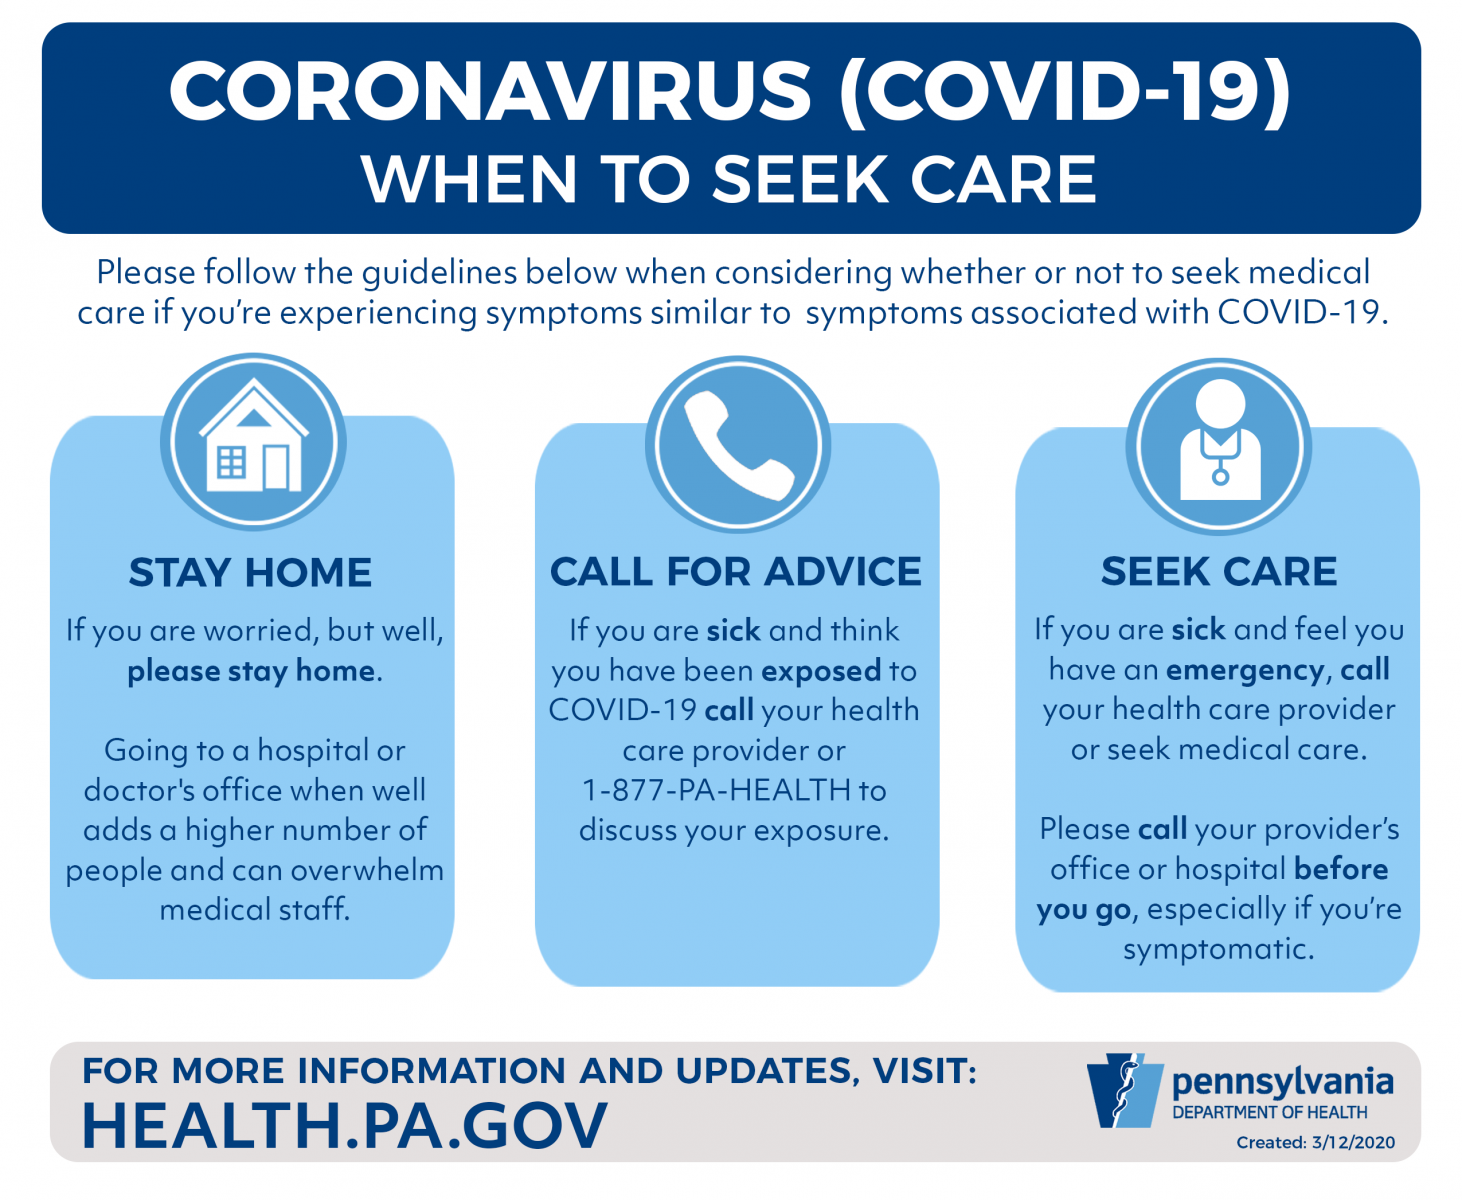 when to seek care infographic